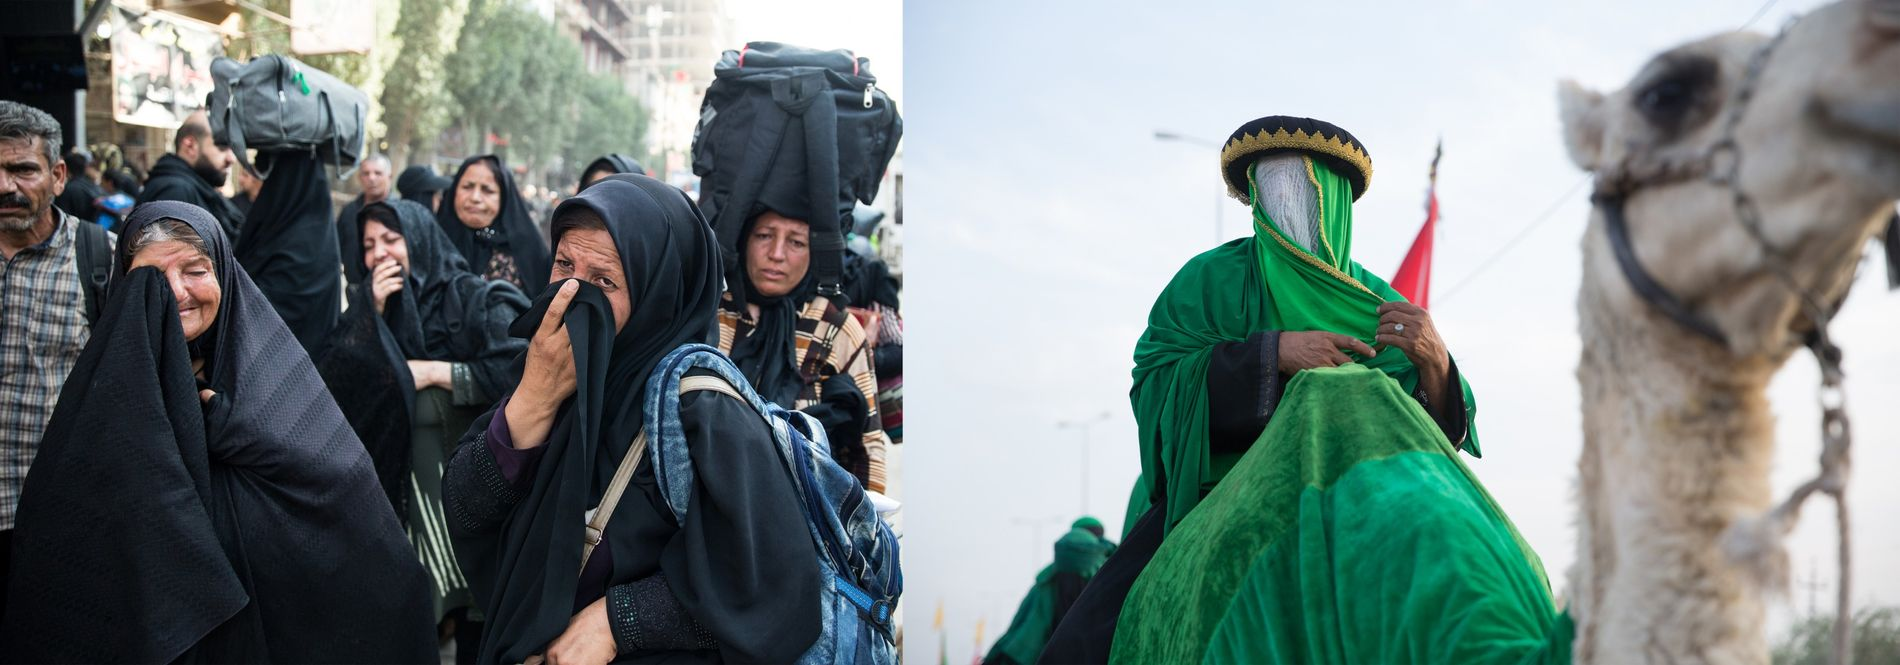 Arba'een draws people to Karbala from great distances – some dressed in tribute to Husayn, others in black.